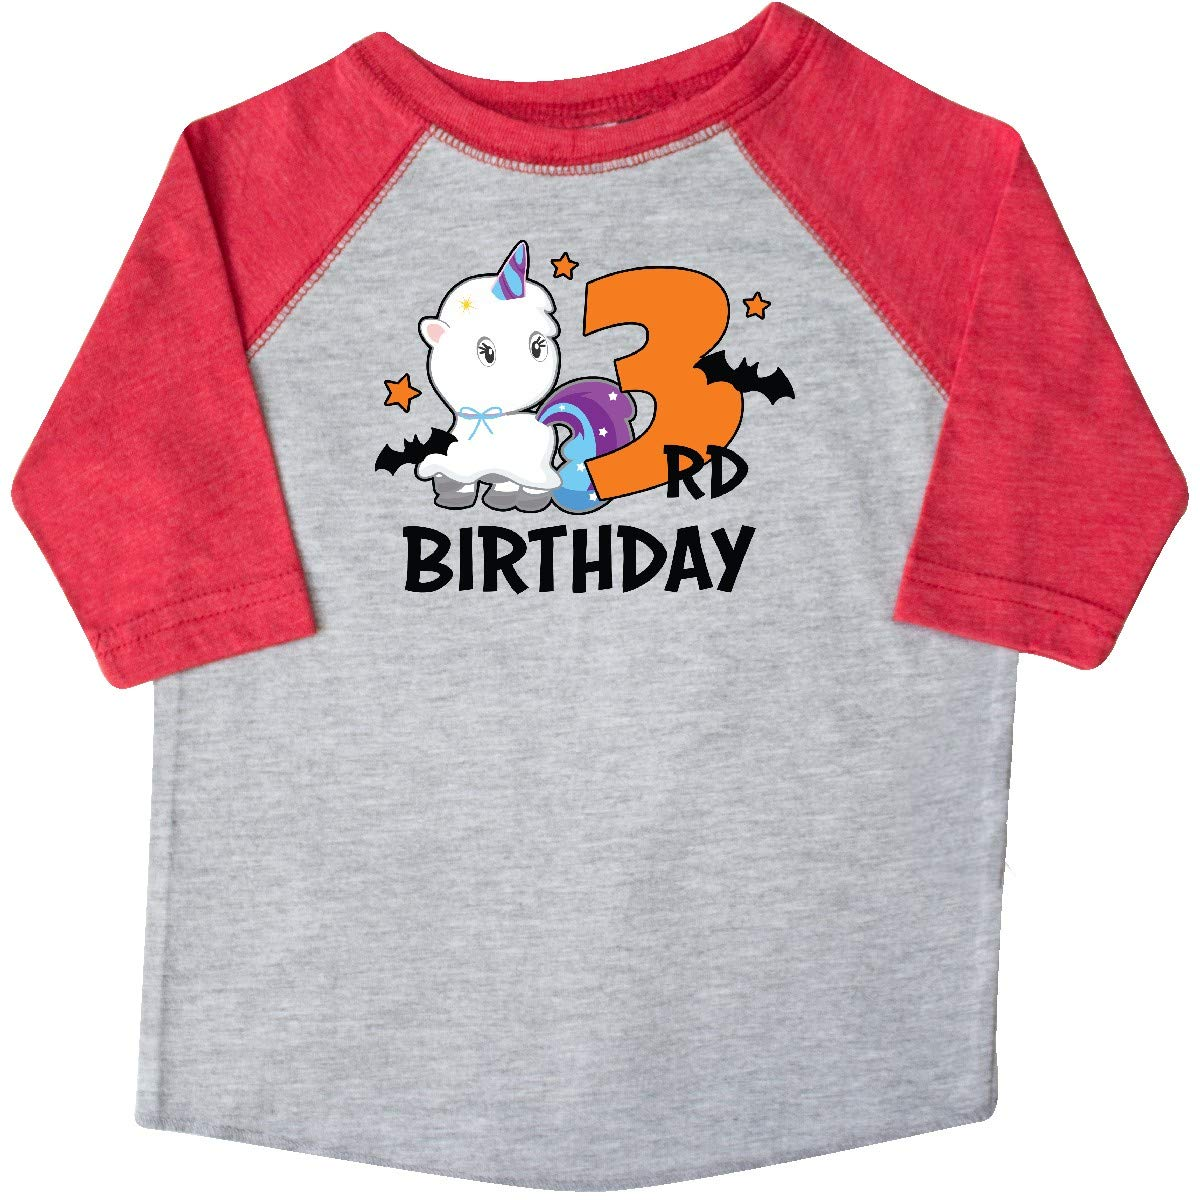 inktastic 3rd Birthday with Unicorn Ghost and Bats Toddler T-Shirt